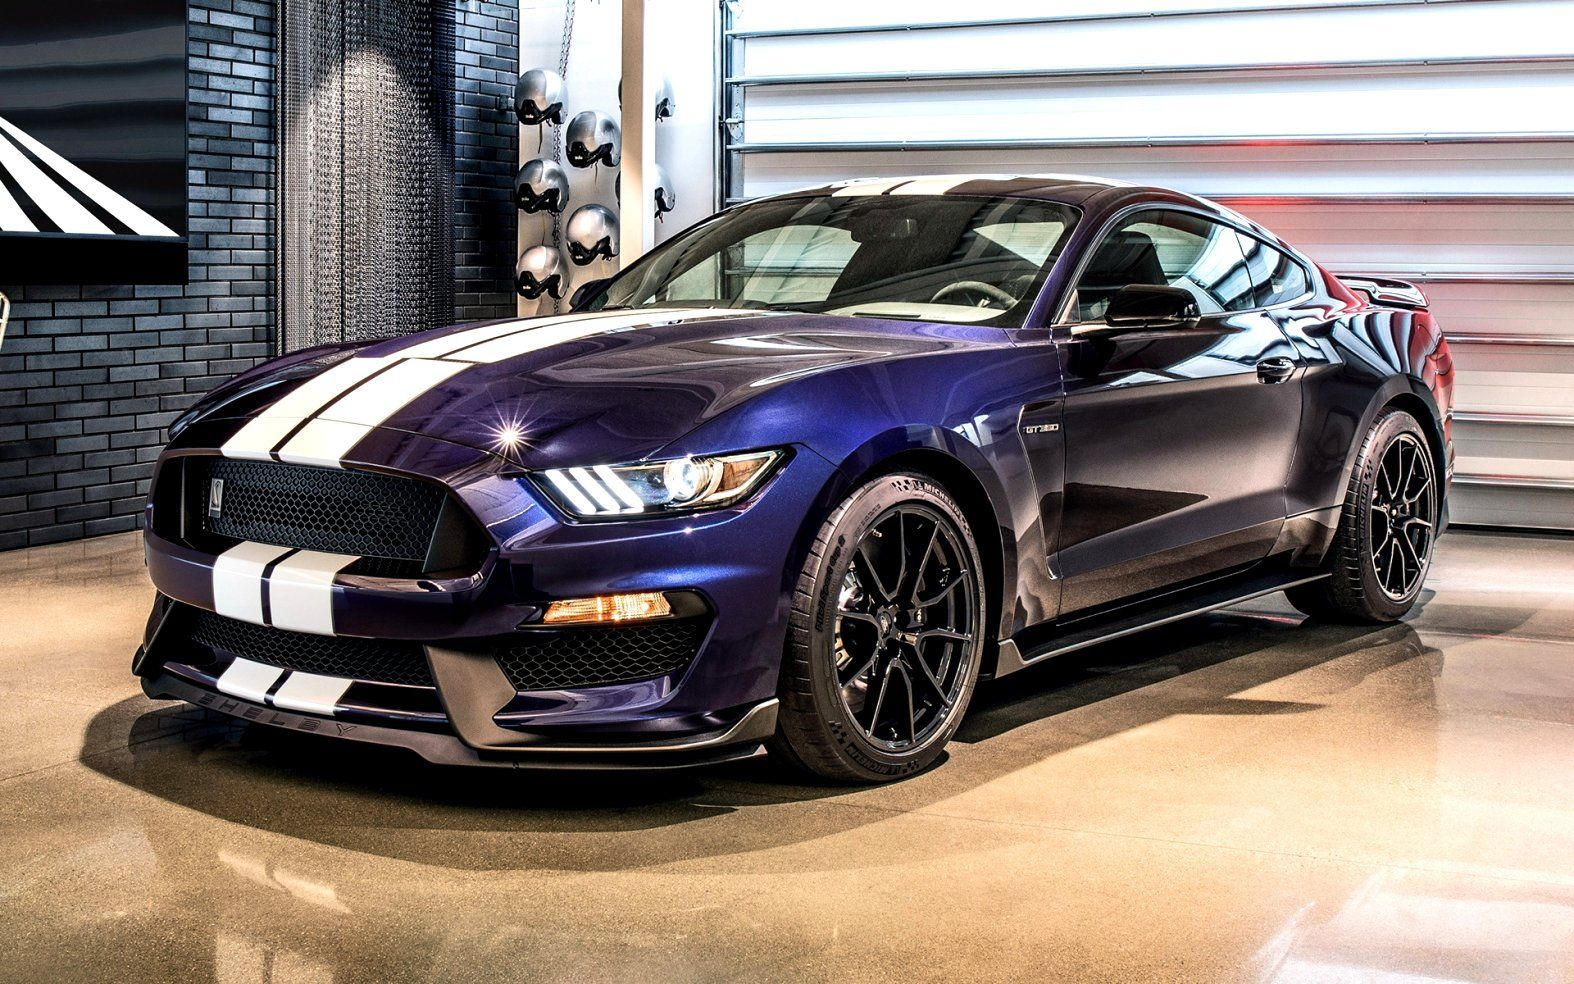 2020 Ford Mustang Shelby Gt350 Release Date And Concept Ford Mustang Shelby Ford Mustang Mustang Shelby